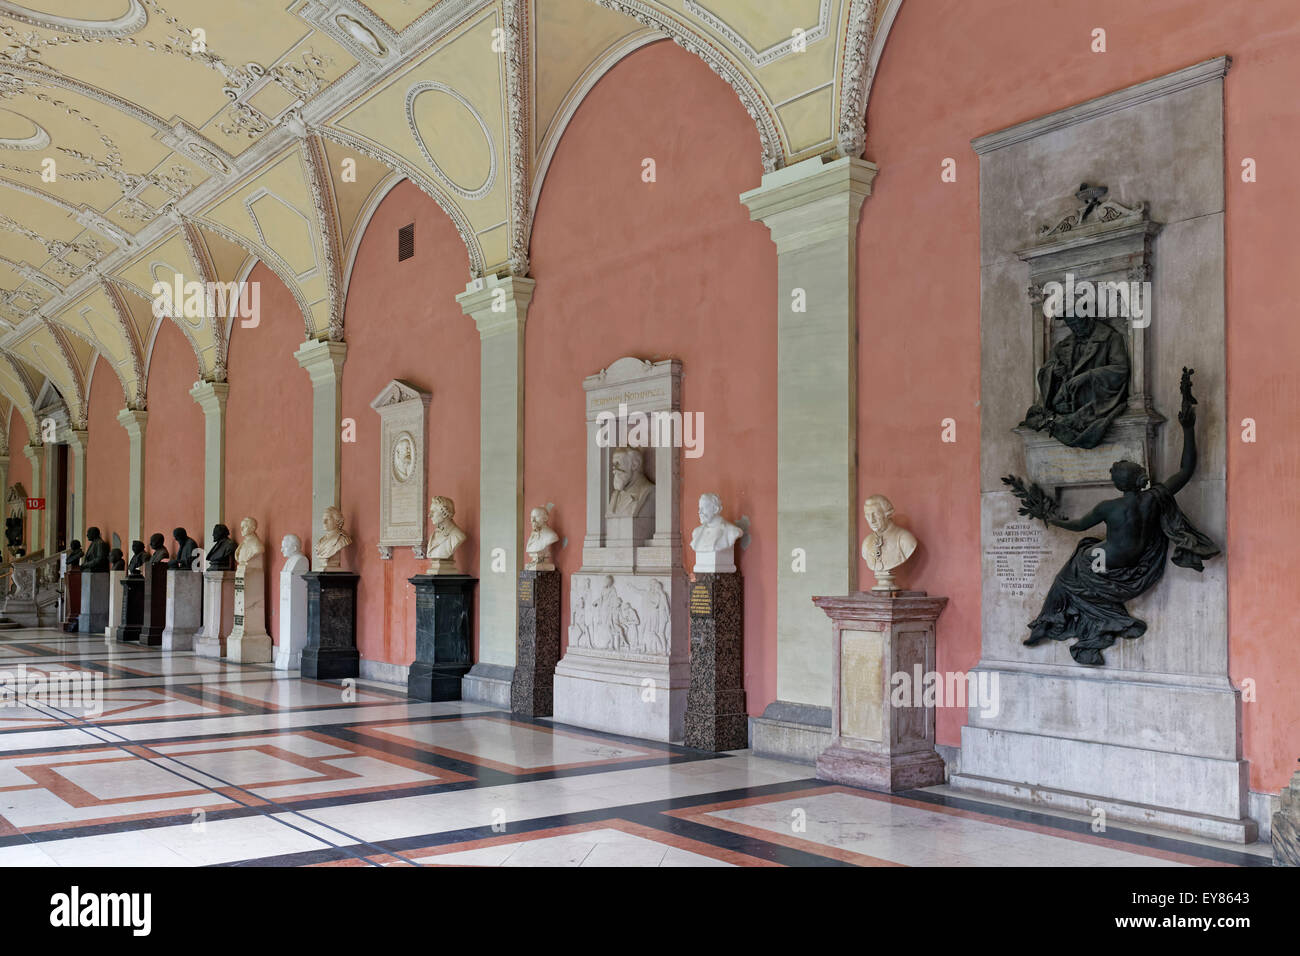 Arcades of the Vienna University, with busts and memorials of important scientists, Ringstraße, Vienna, Austria - Stock Image